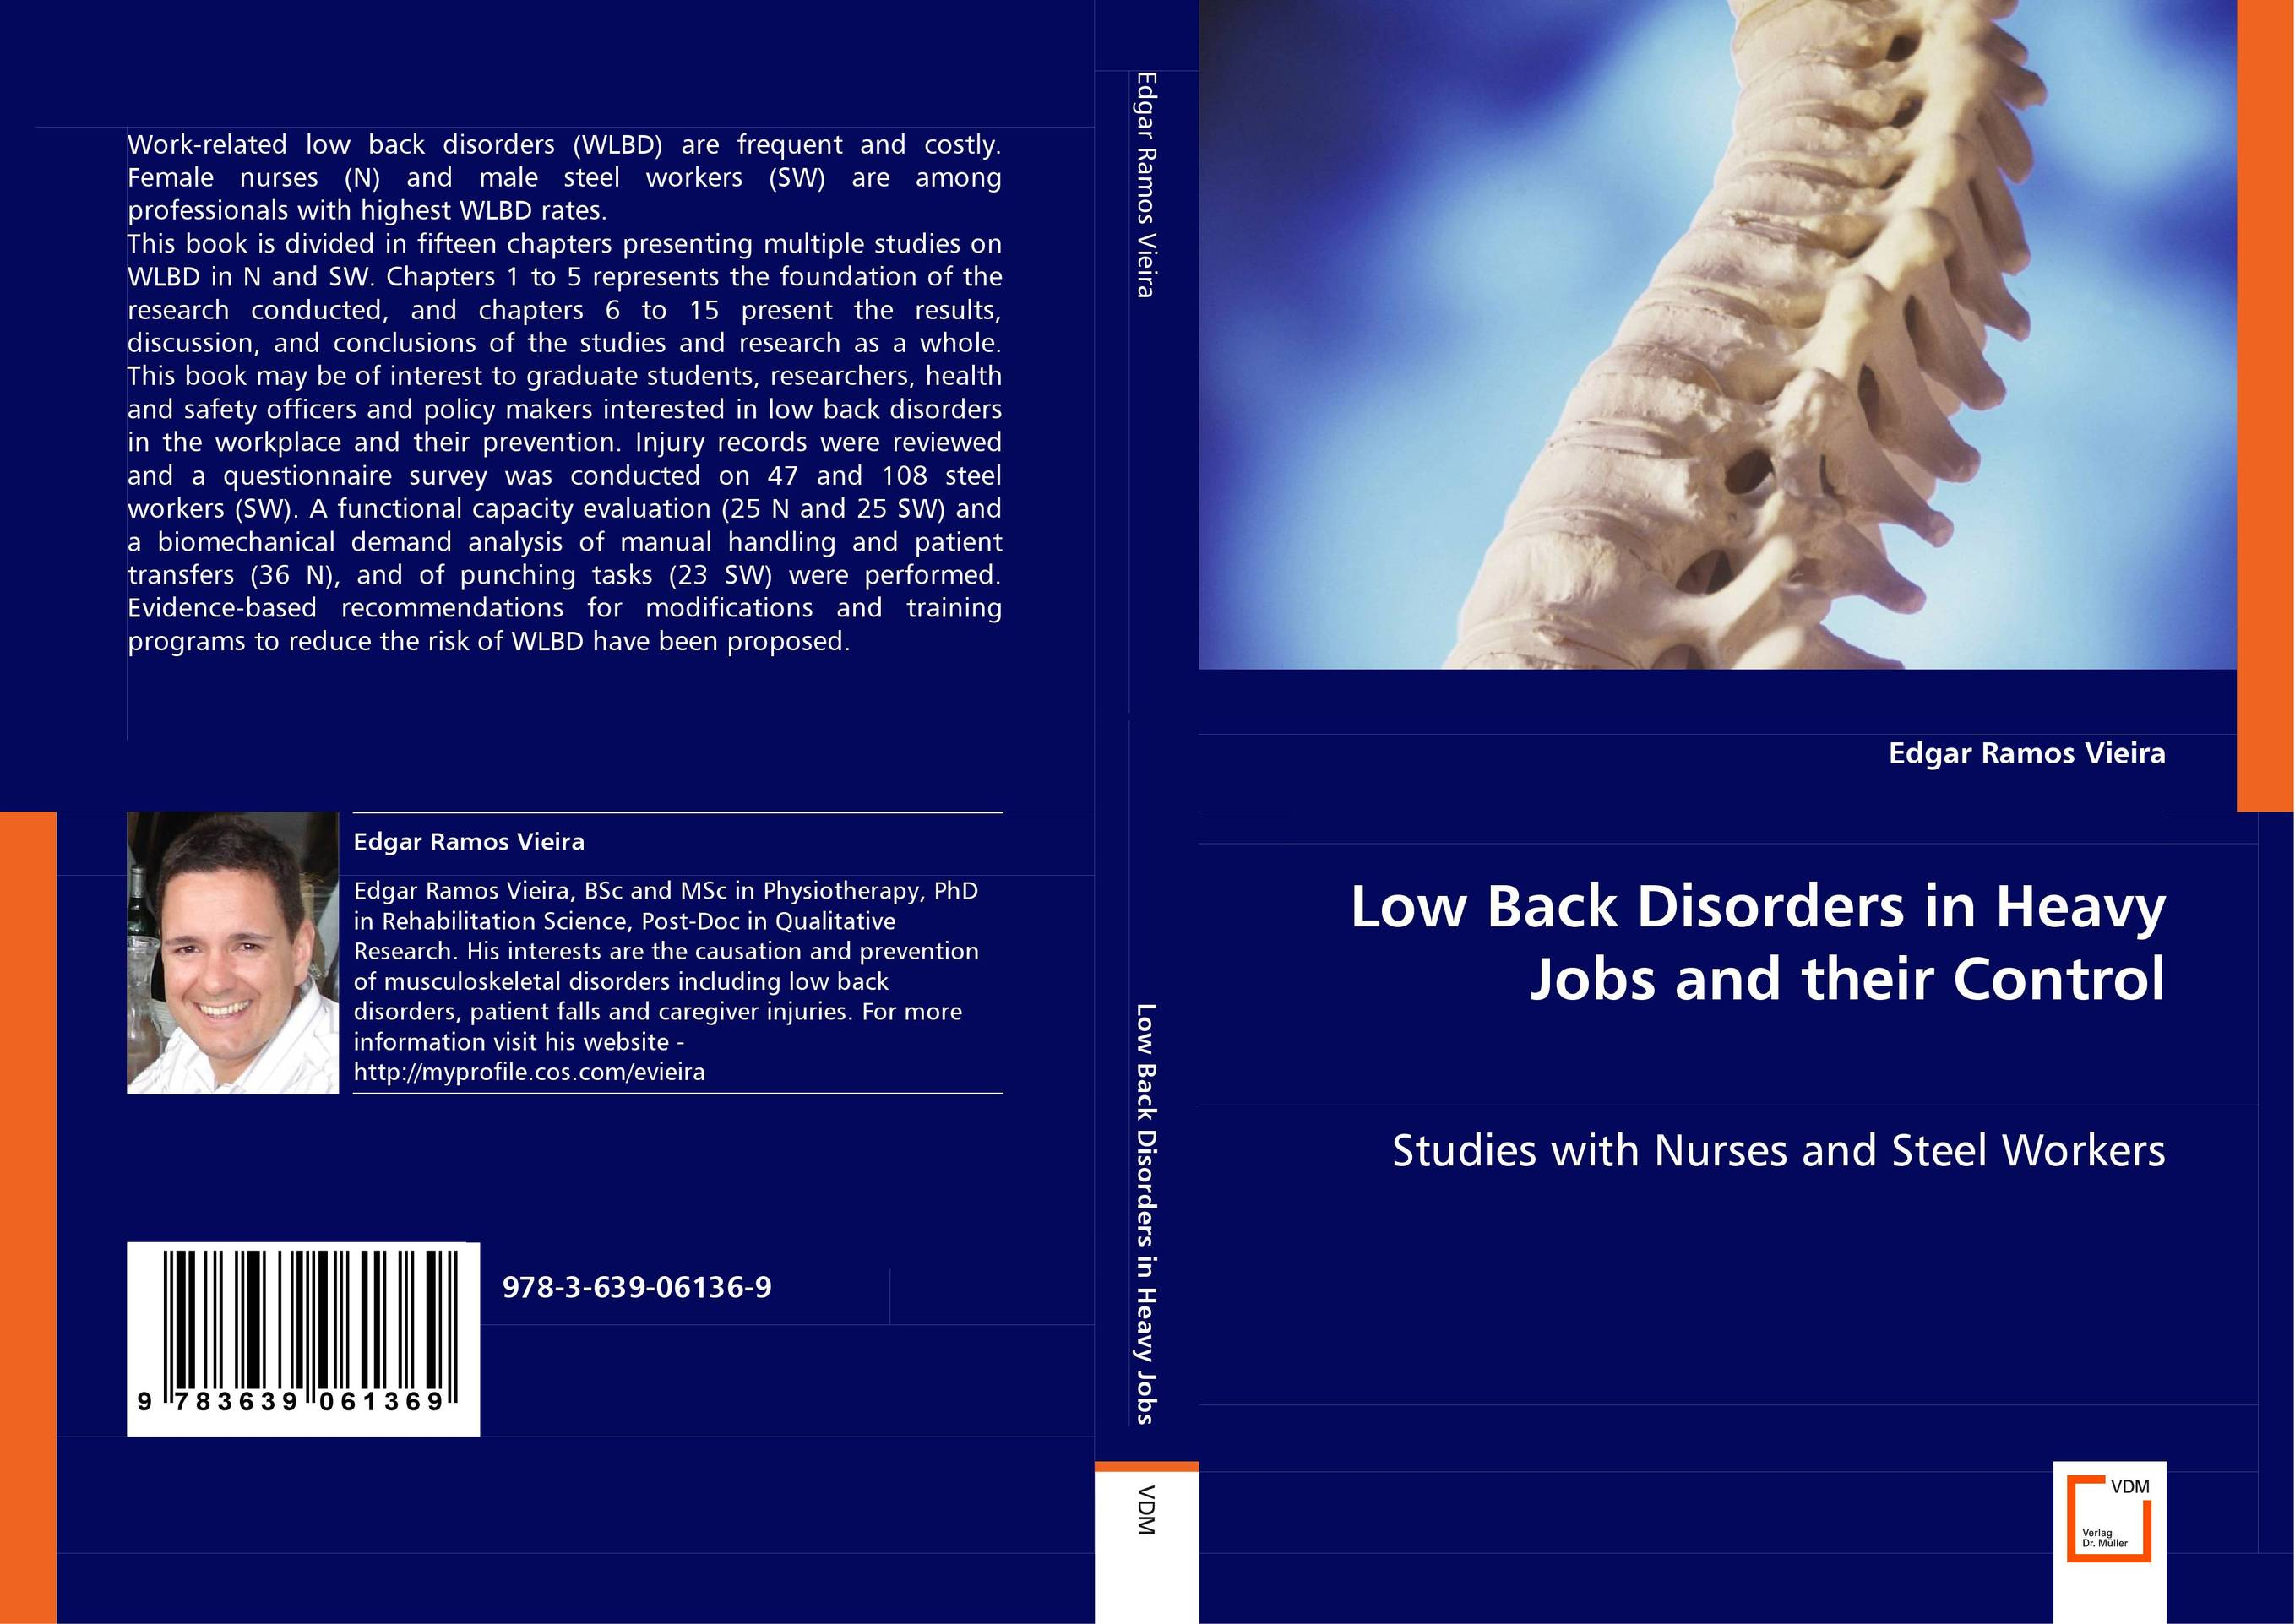 Low Back Disorders in Heavy Jobs and their Control work related musculoskeletal disorders and manual material handling